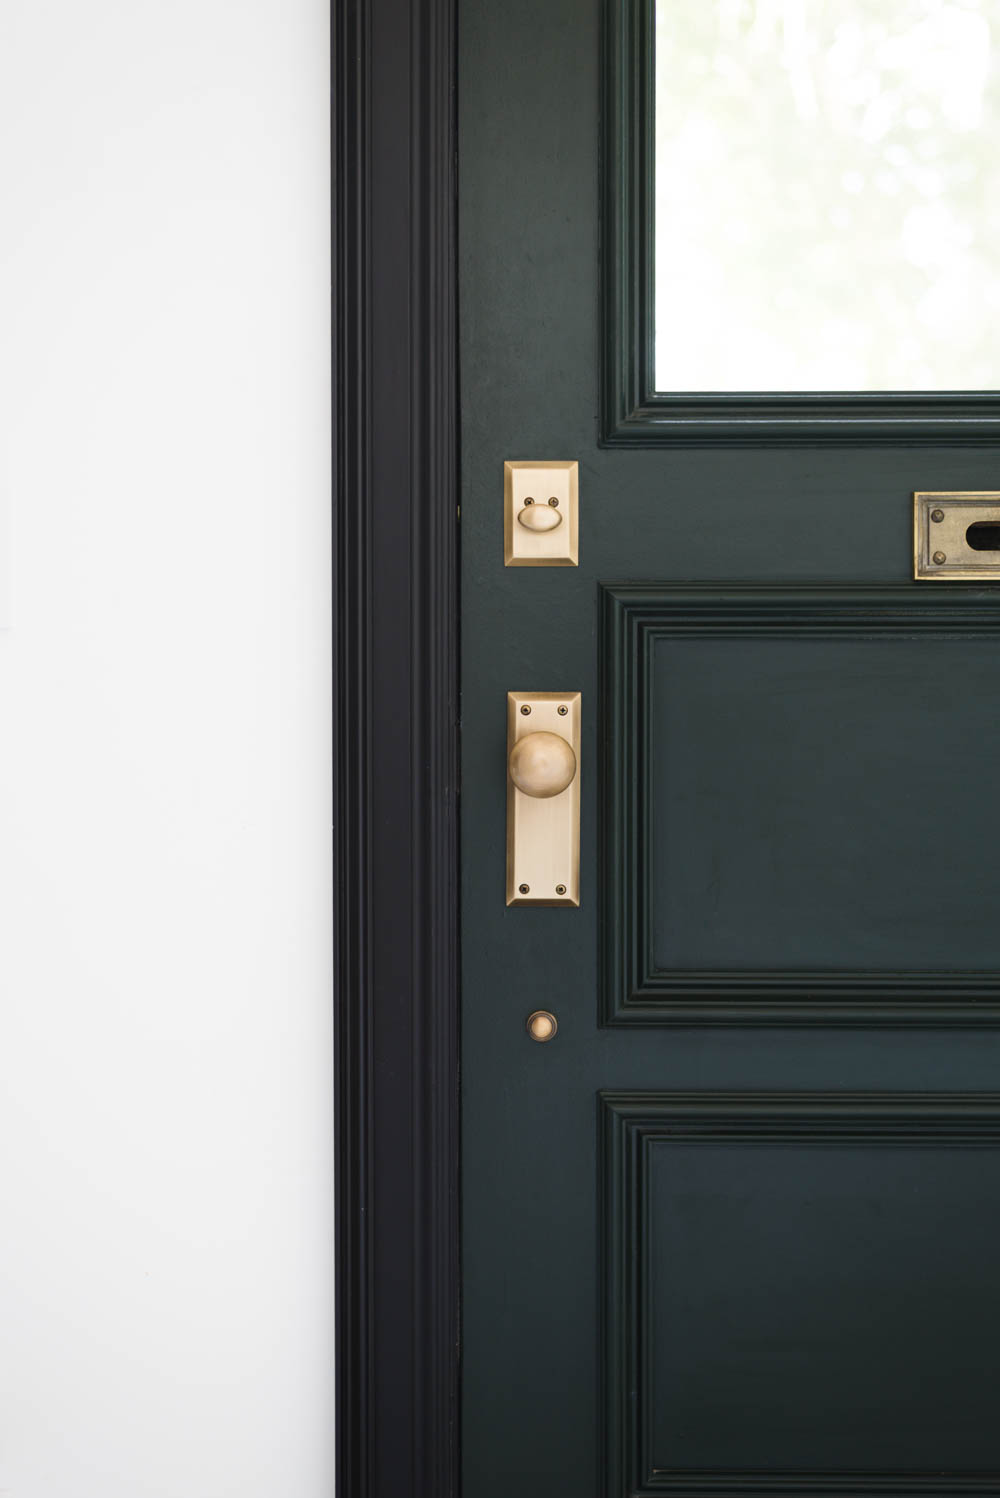 Dark Green Door With Black Casing And Antique Brass Door Knob And Hardware.  This Post